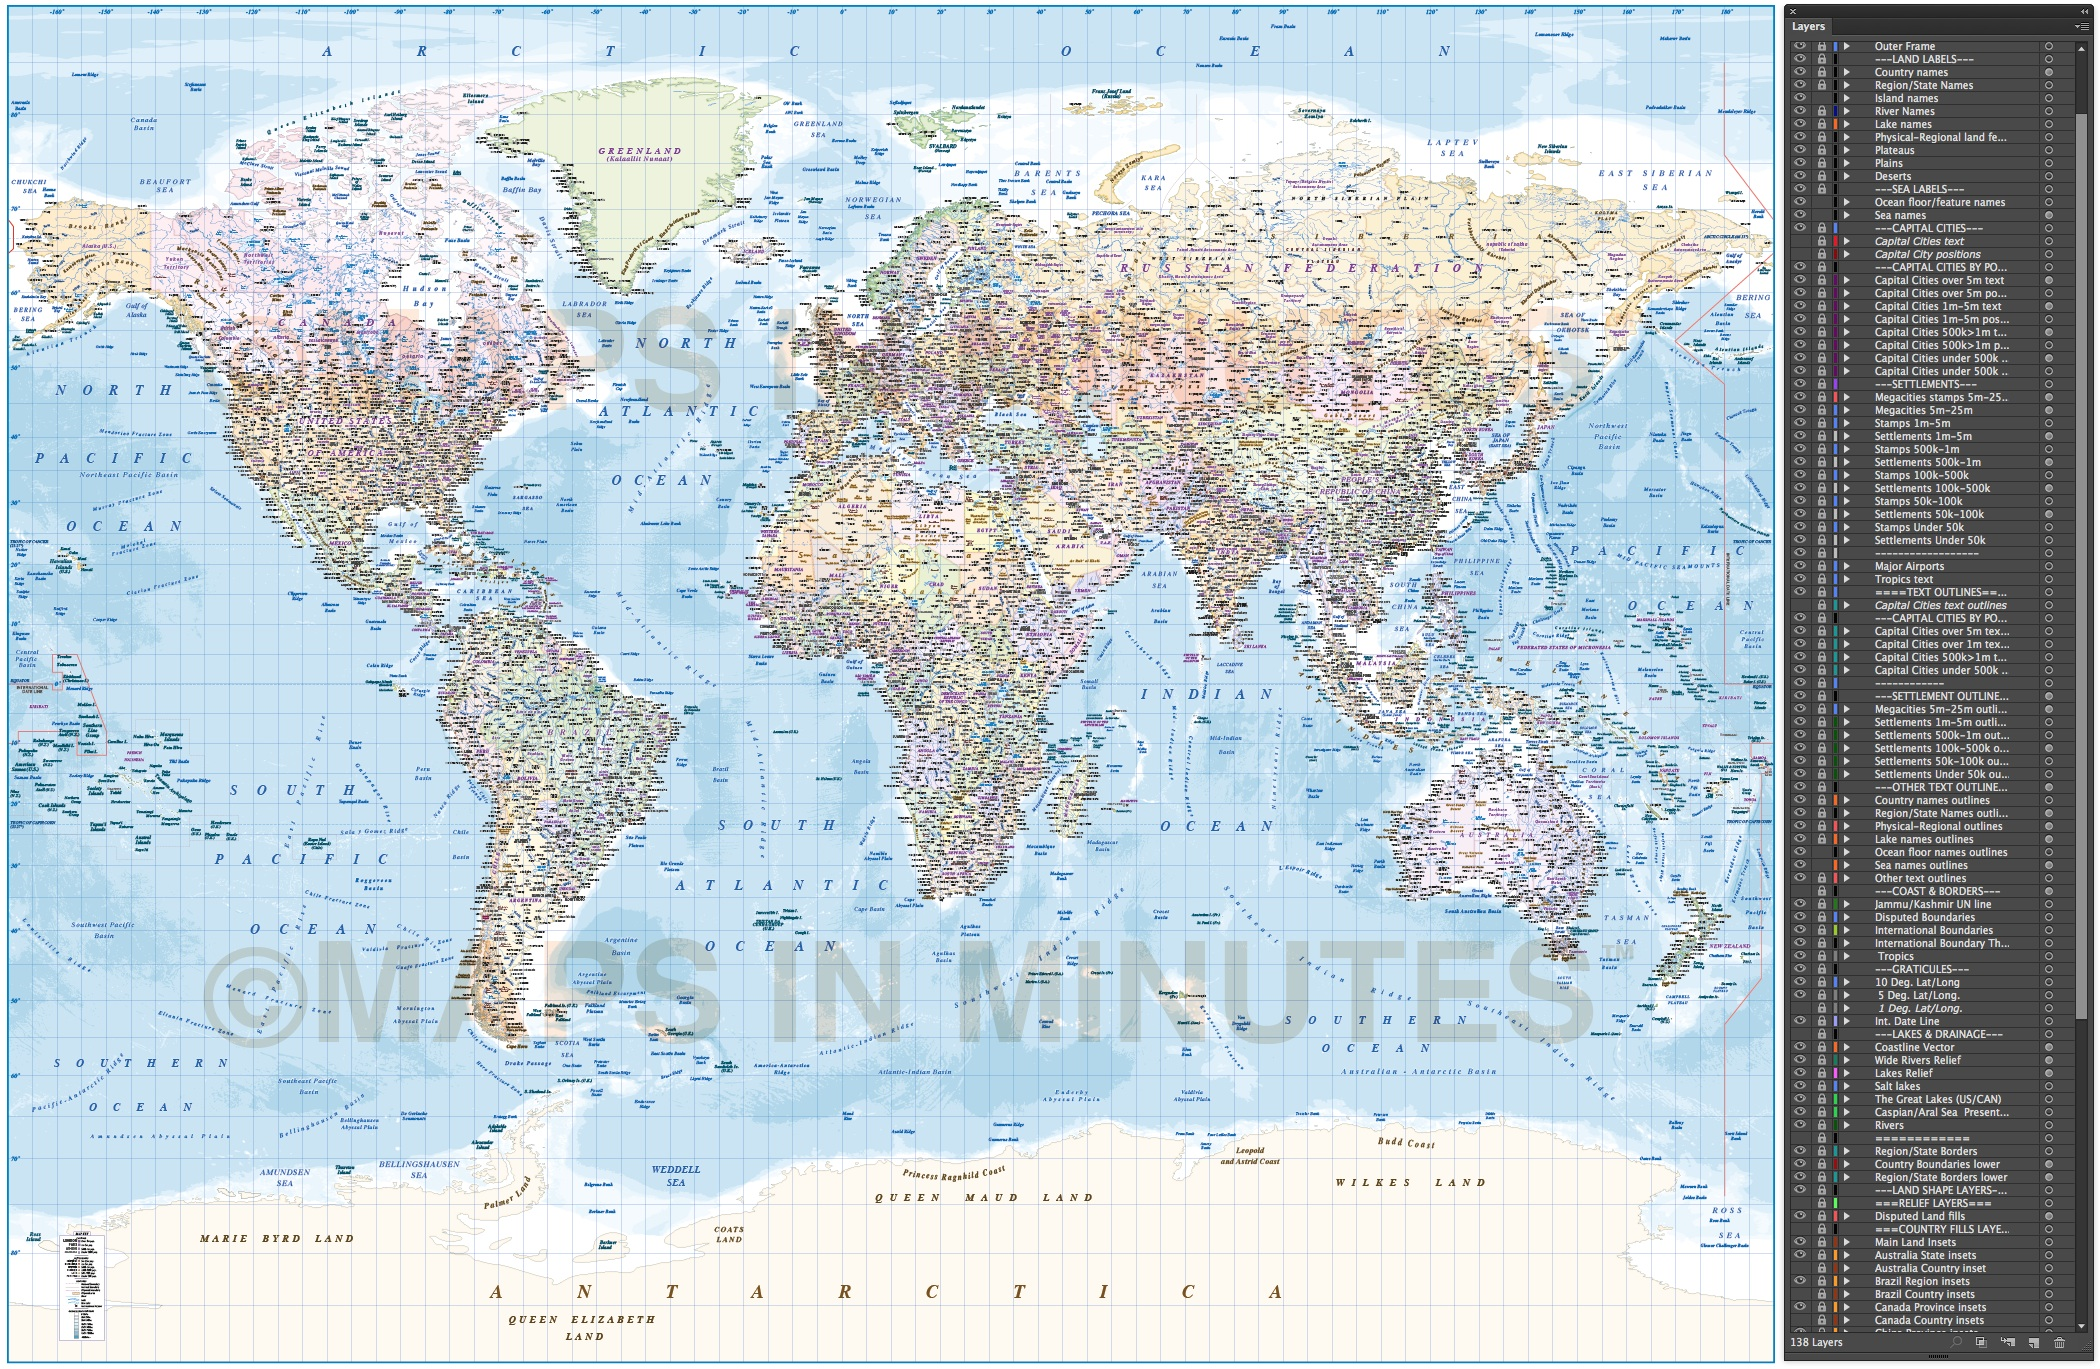 Digital vector world map with ocean floor contours and country digital vector map political gall world map with insets and ocean floor contours showing layering gumiabroncs Images